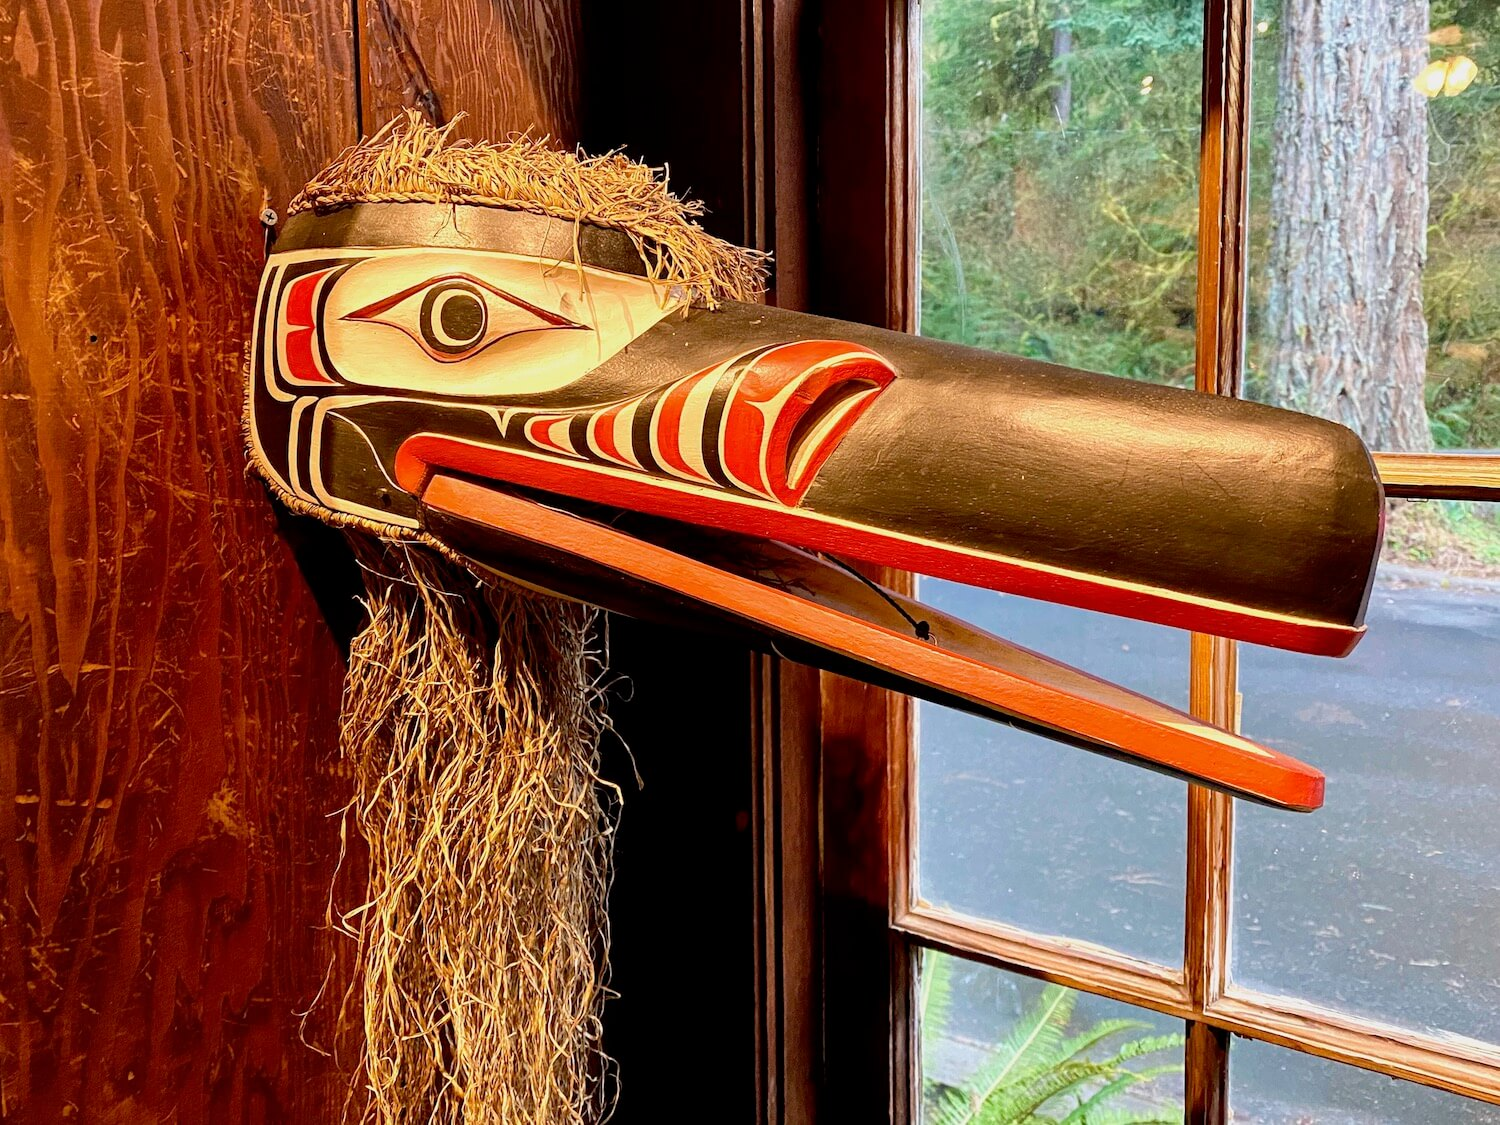 A native mask made from cedar wood and the bark of the tree depicts an ancient story about a bird. The beak is painted black with hints of bright red.